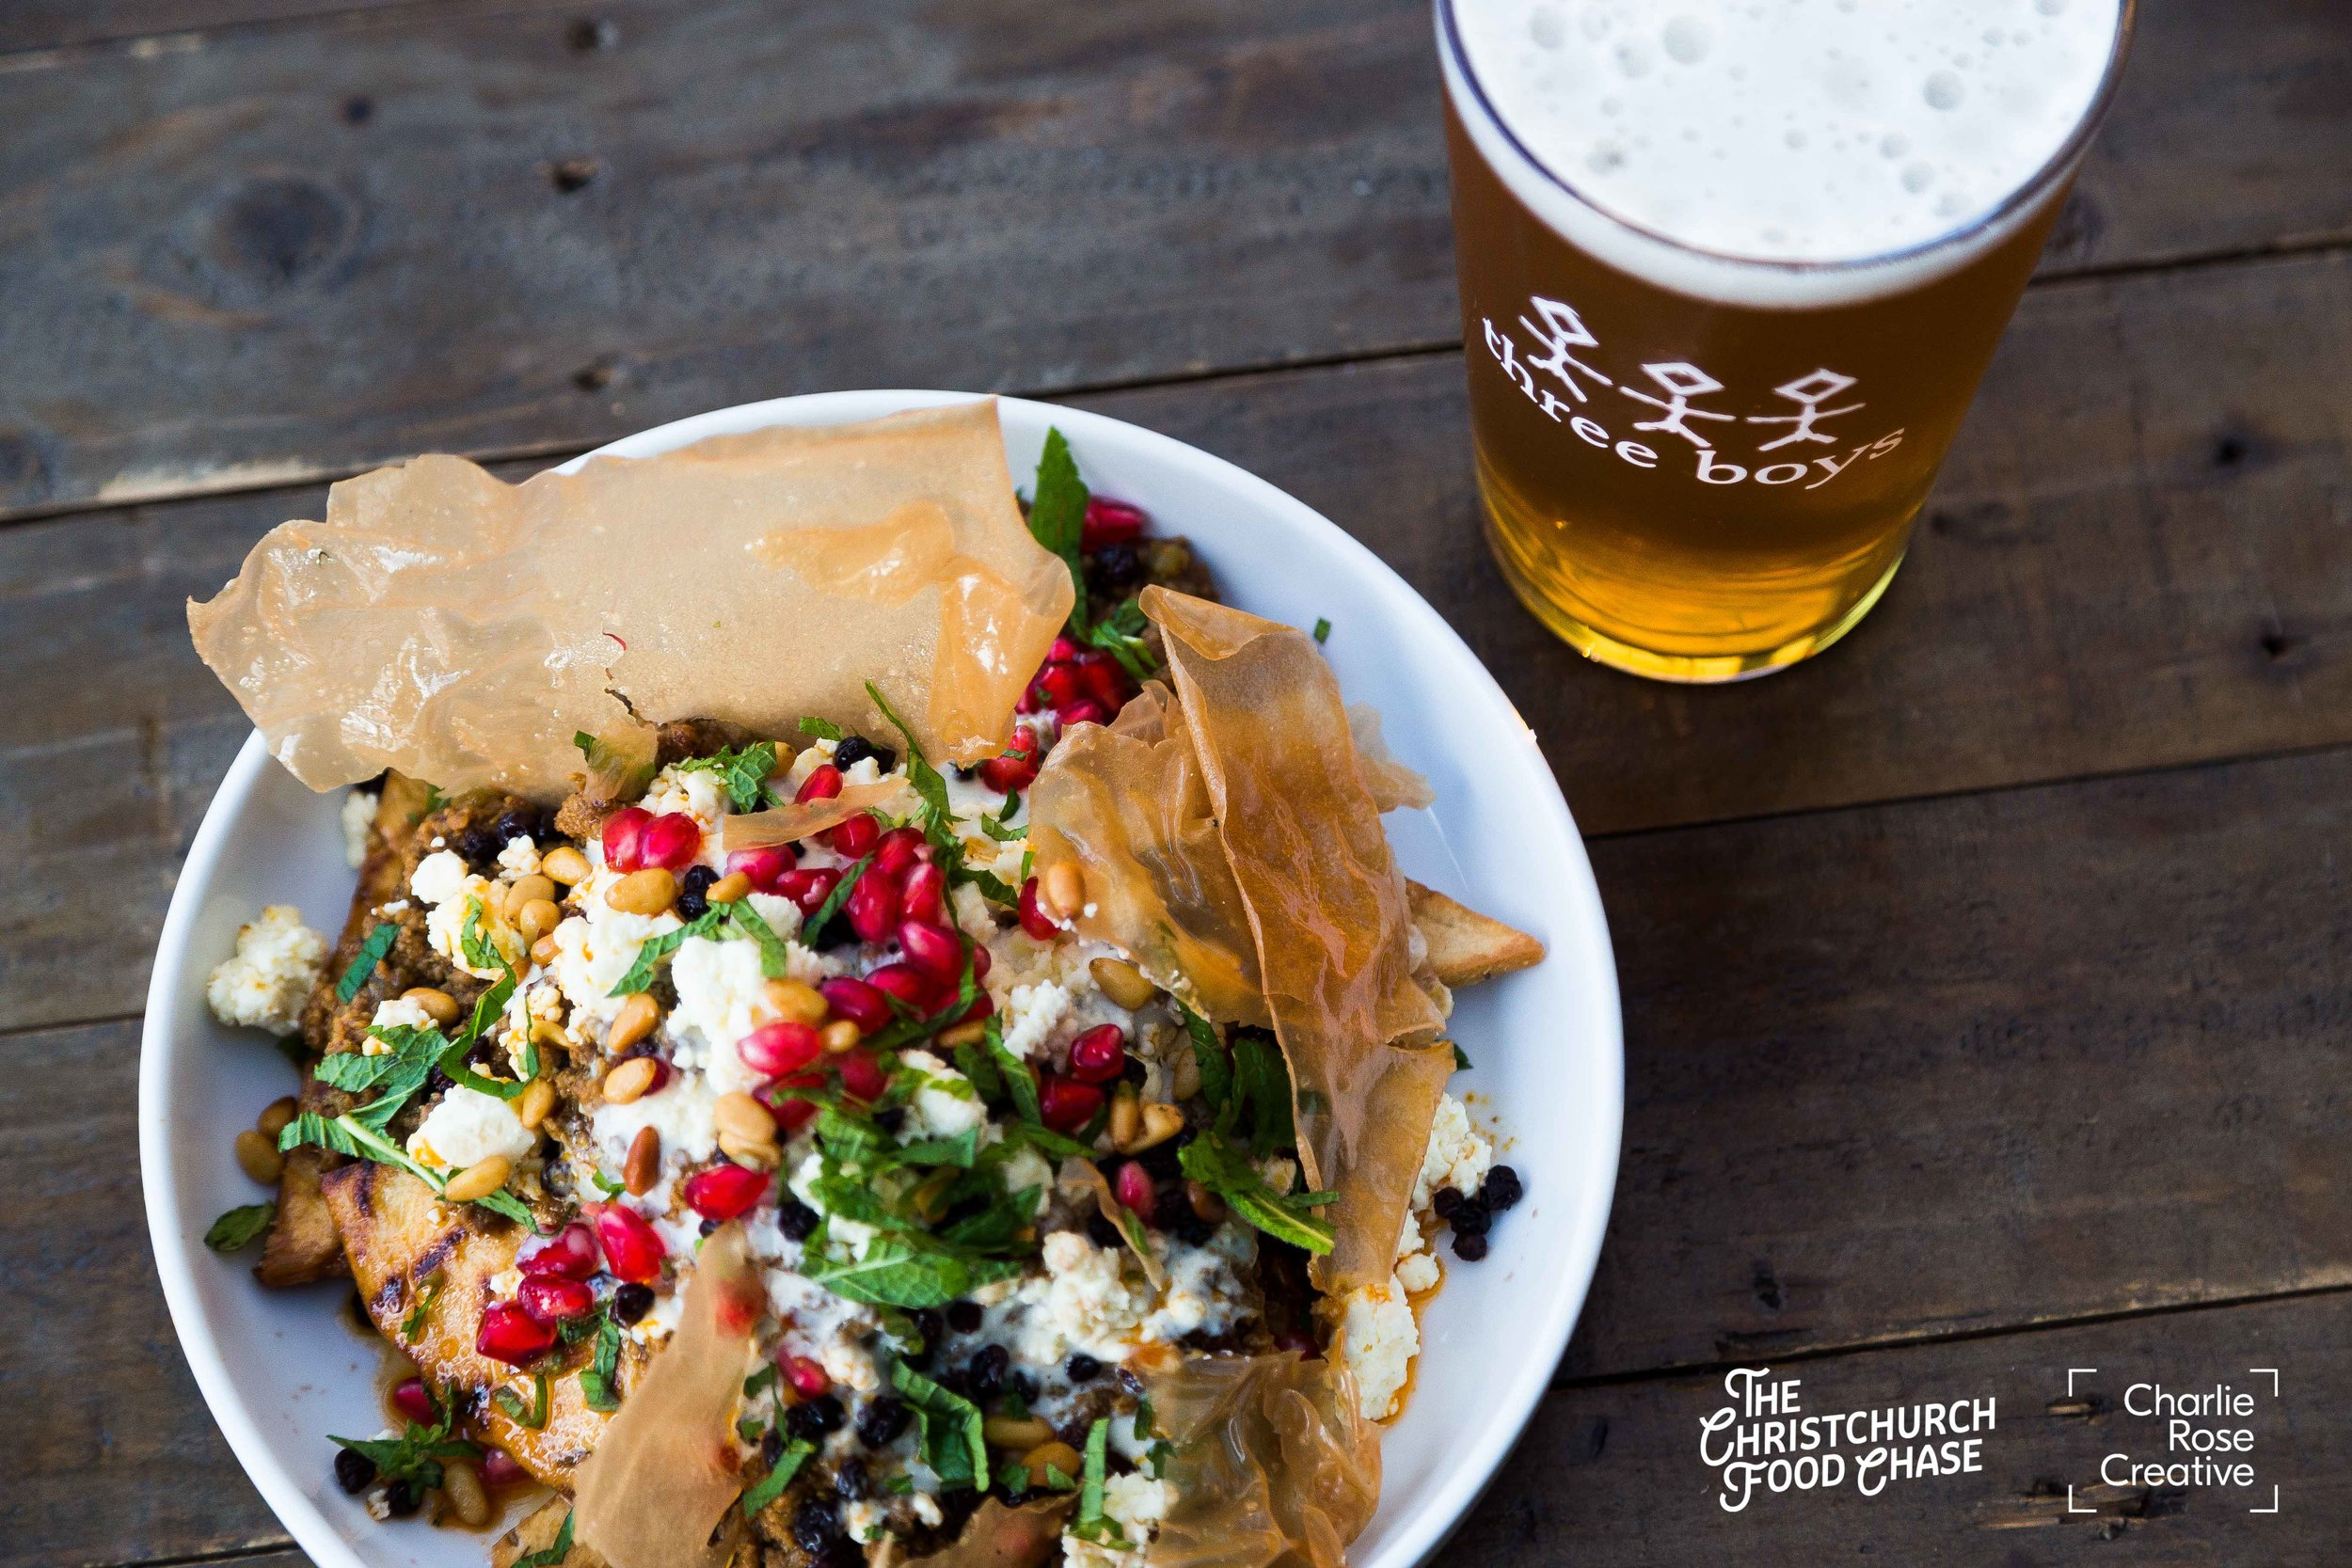 Best Local Beer Pairing: Welles Street - Middle East Feast with Three Boys Wheat Beer -